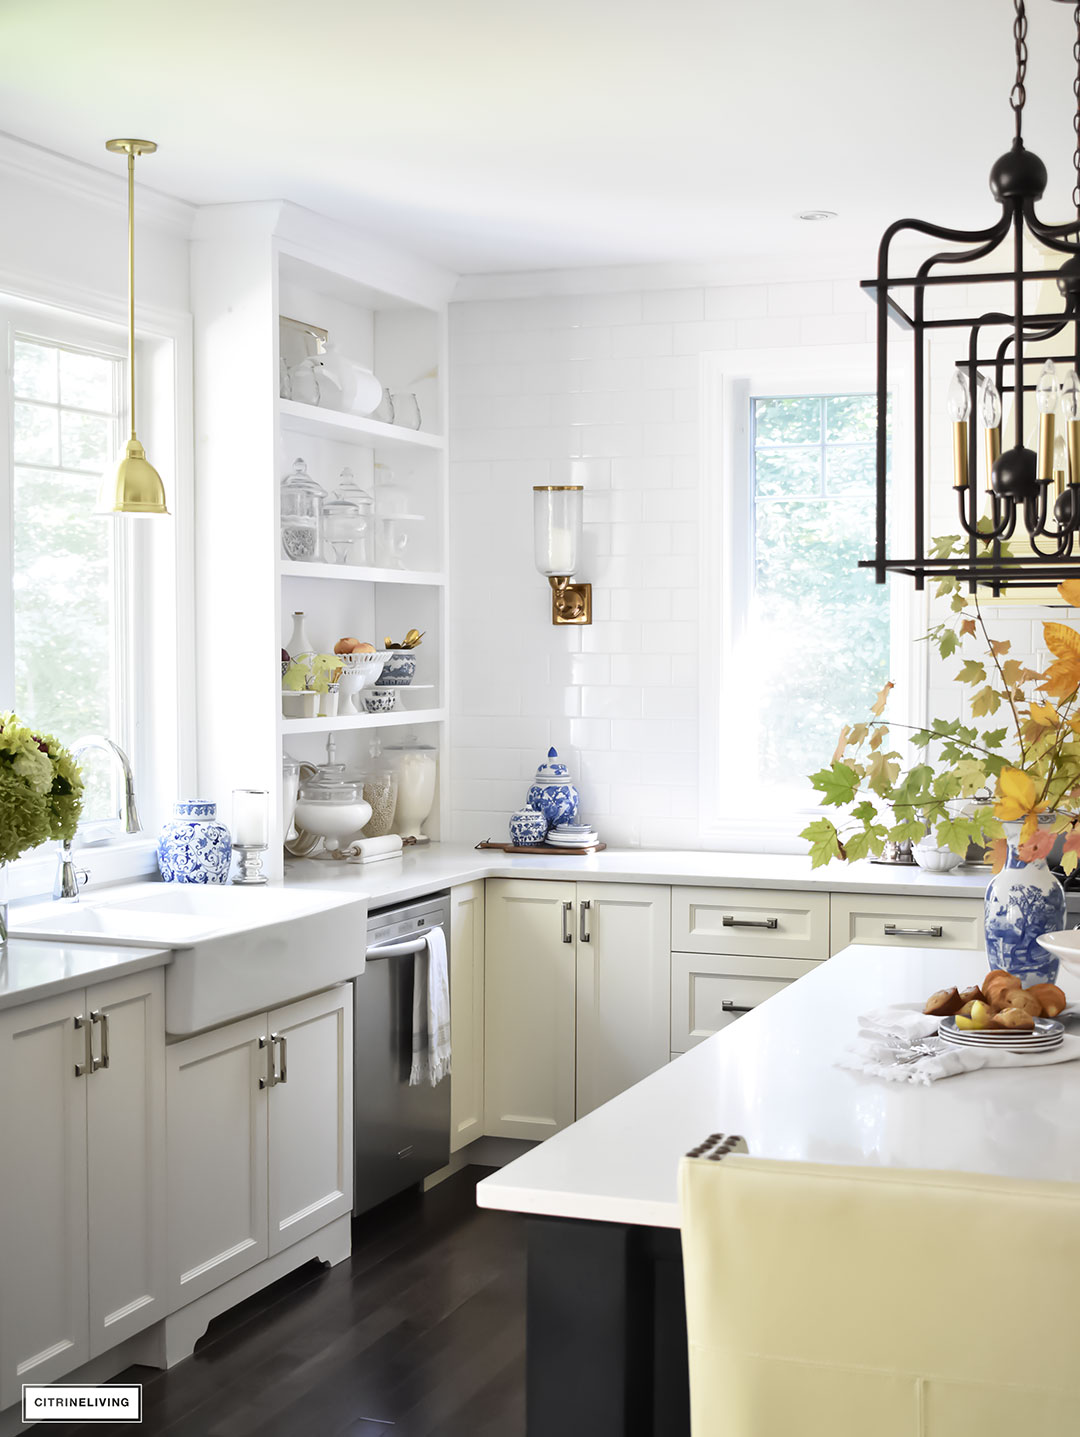 Fall Home Tour - casual elegant black and white kitchen with built-in shelving. Blue and white dishes and fall foliage.